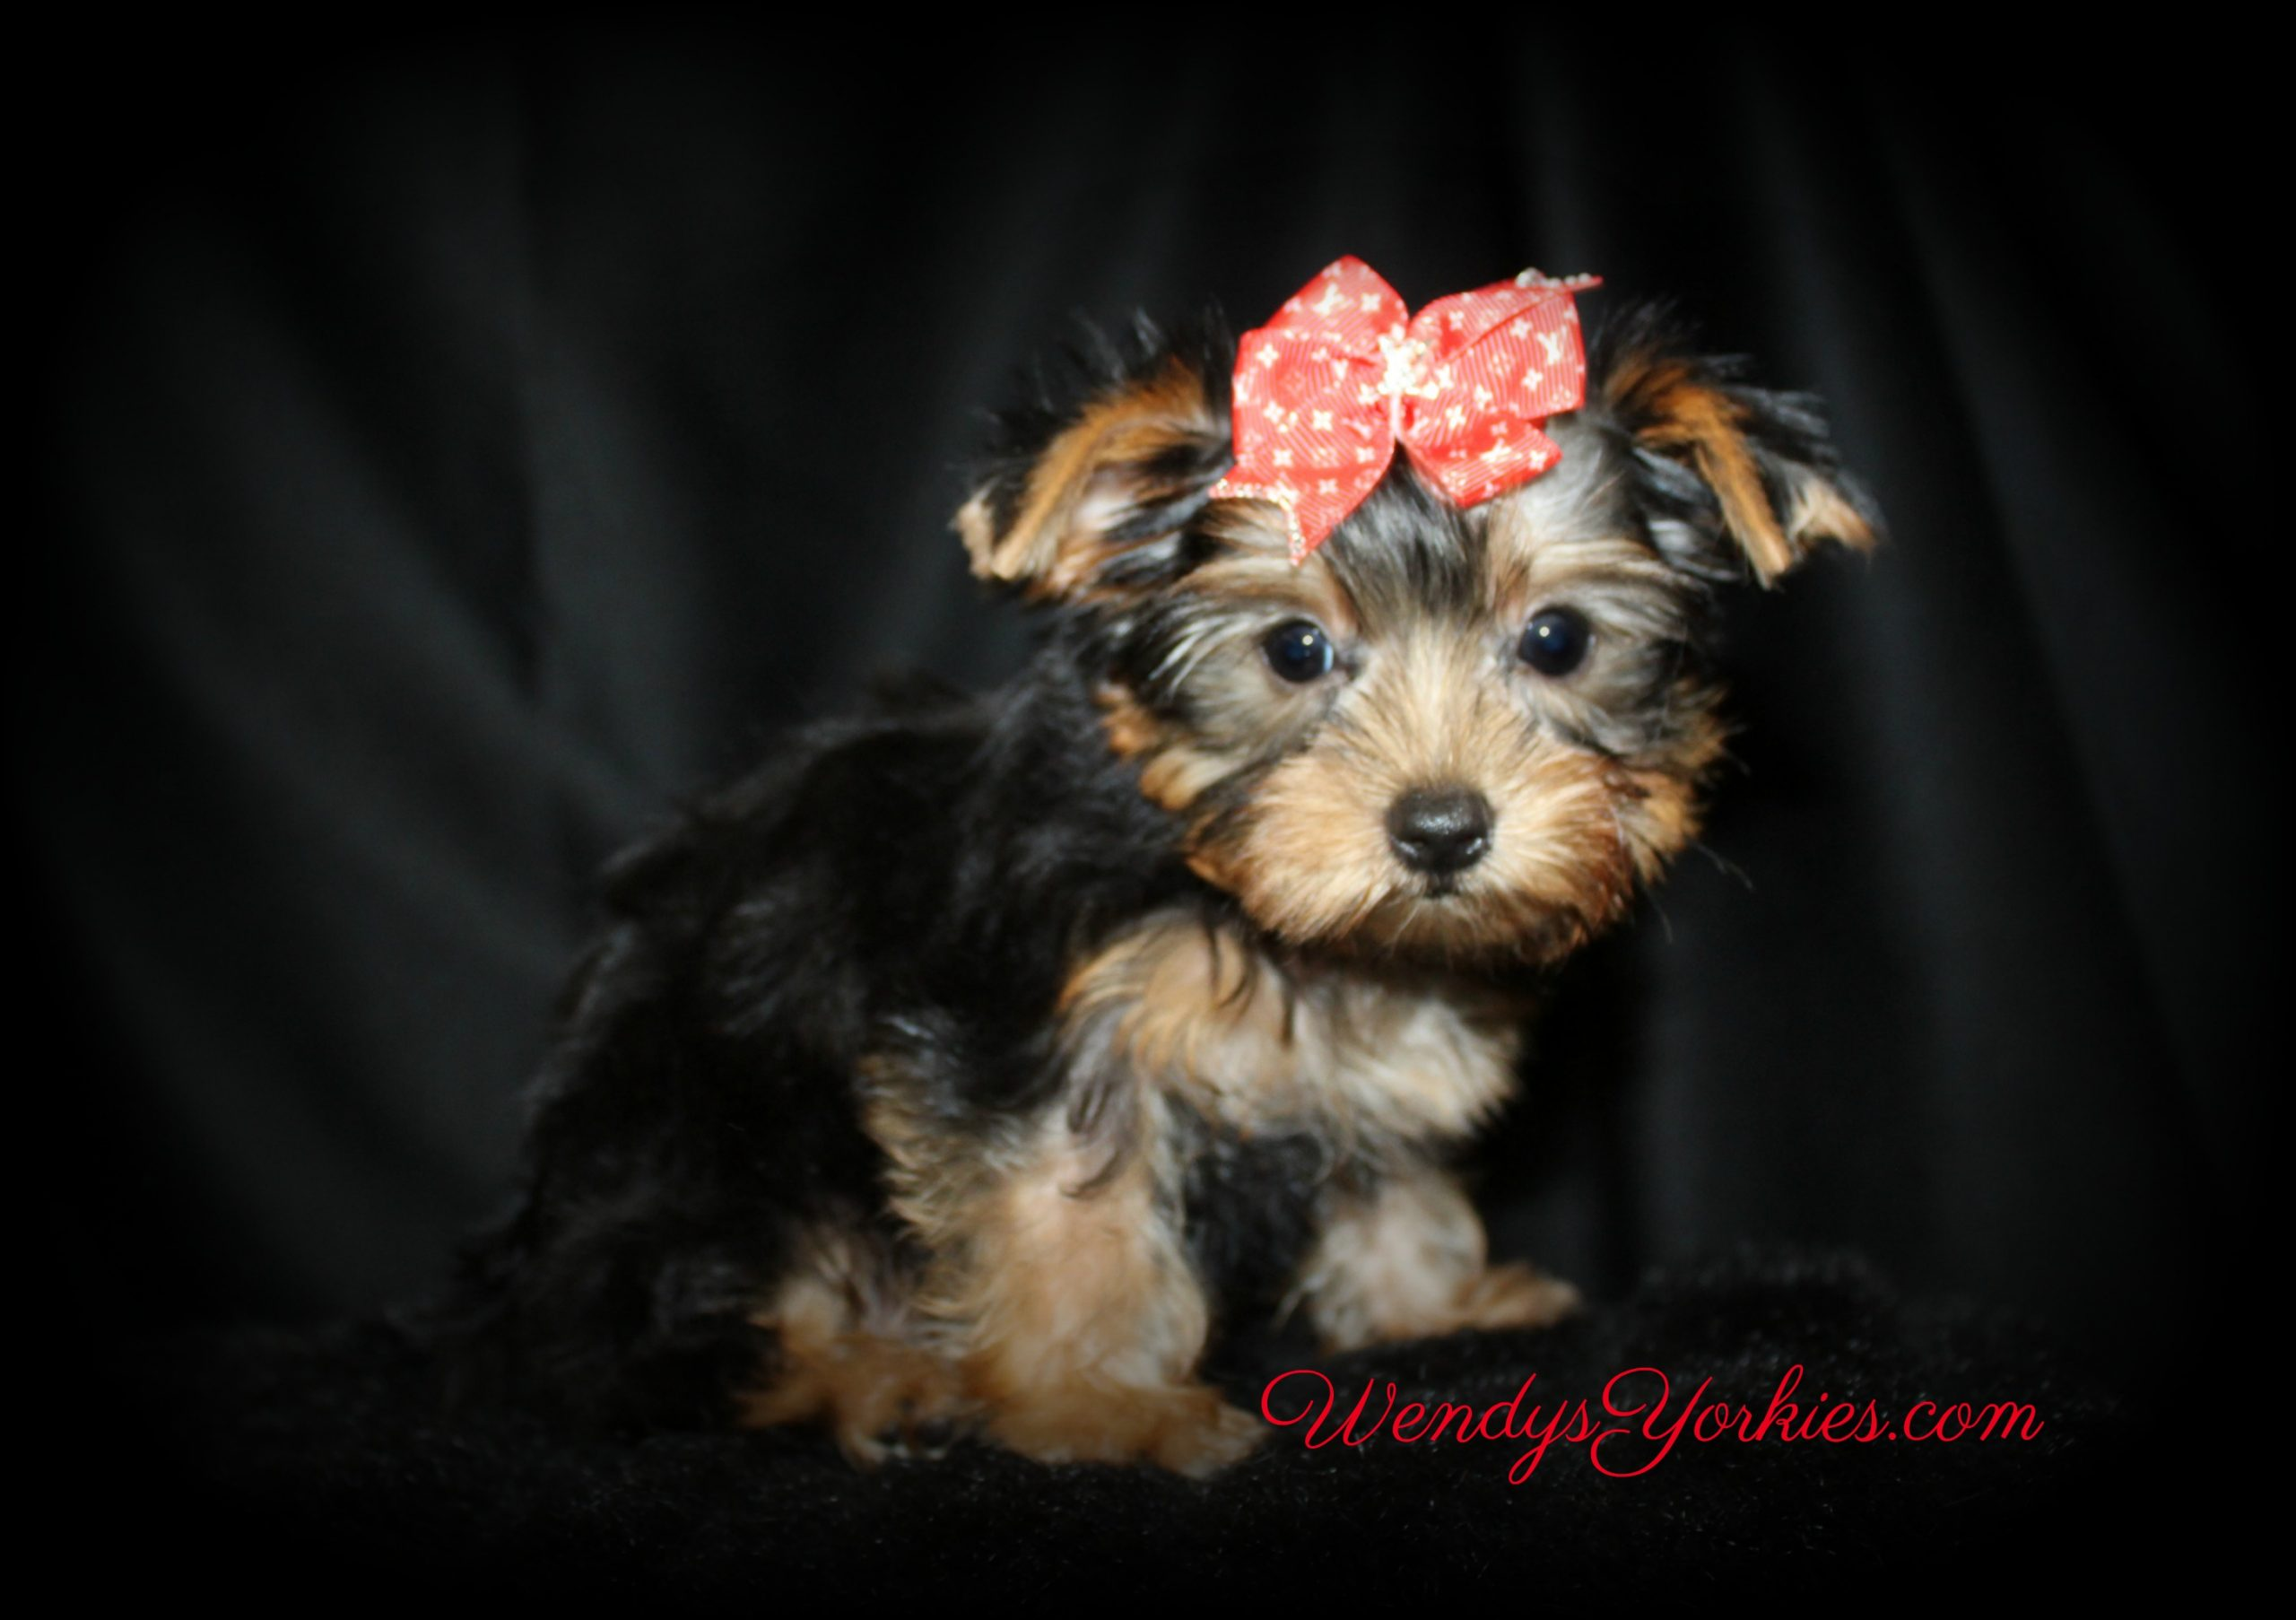 Yorkie puppies for sale, Nola m1, WendysYorkies.com